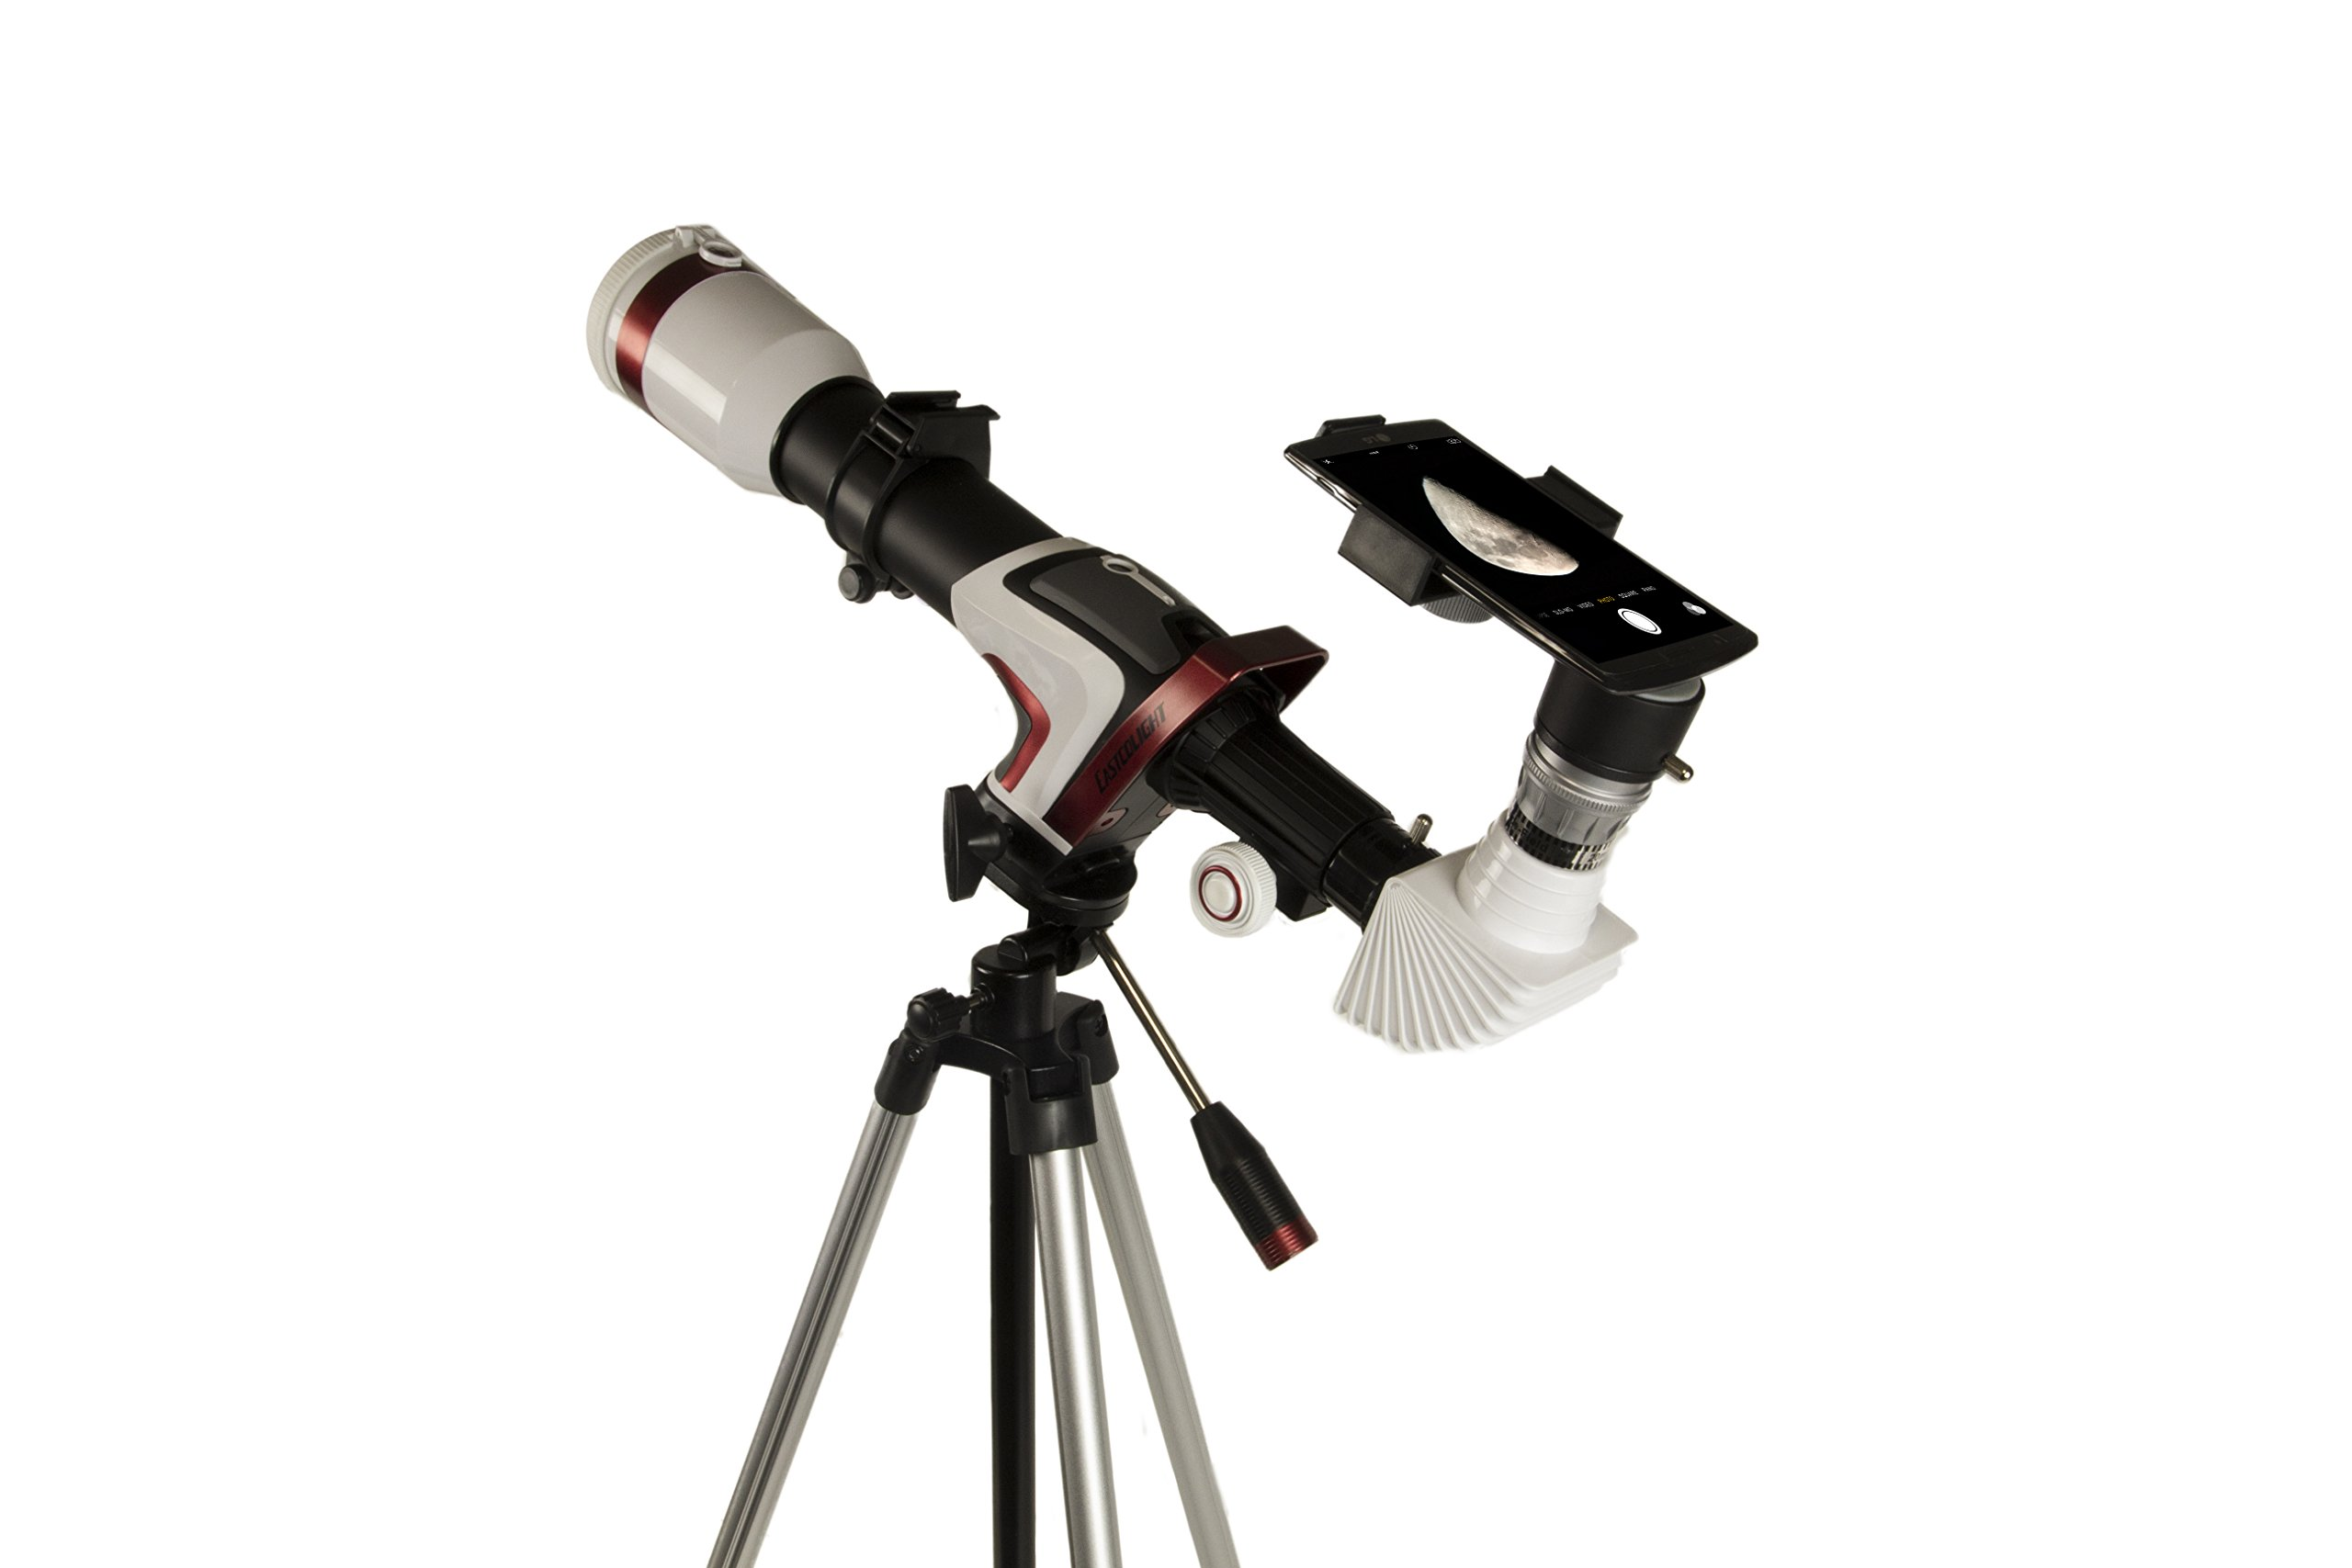 Galaxy Tracker Advanced Smartphone Enabled 50mm Objective Lens Telescope by Scientifics Direct